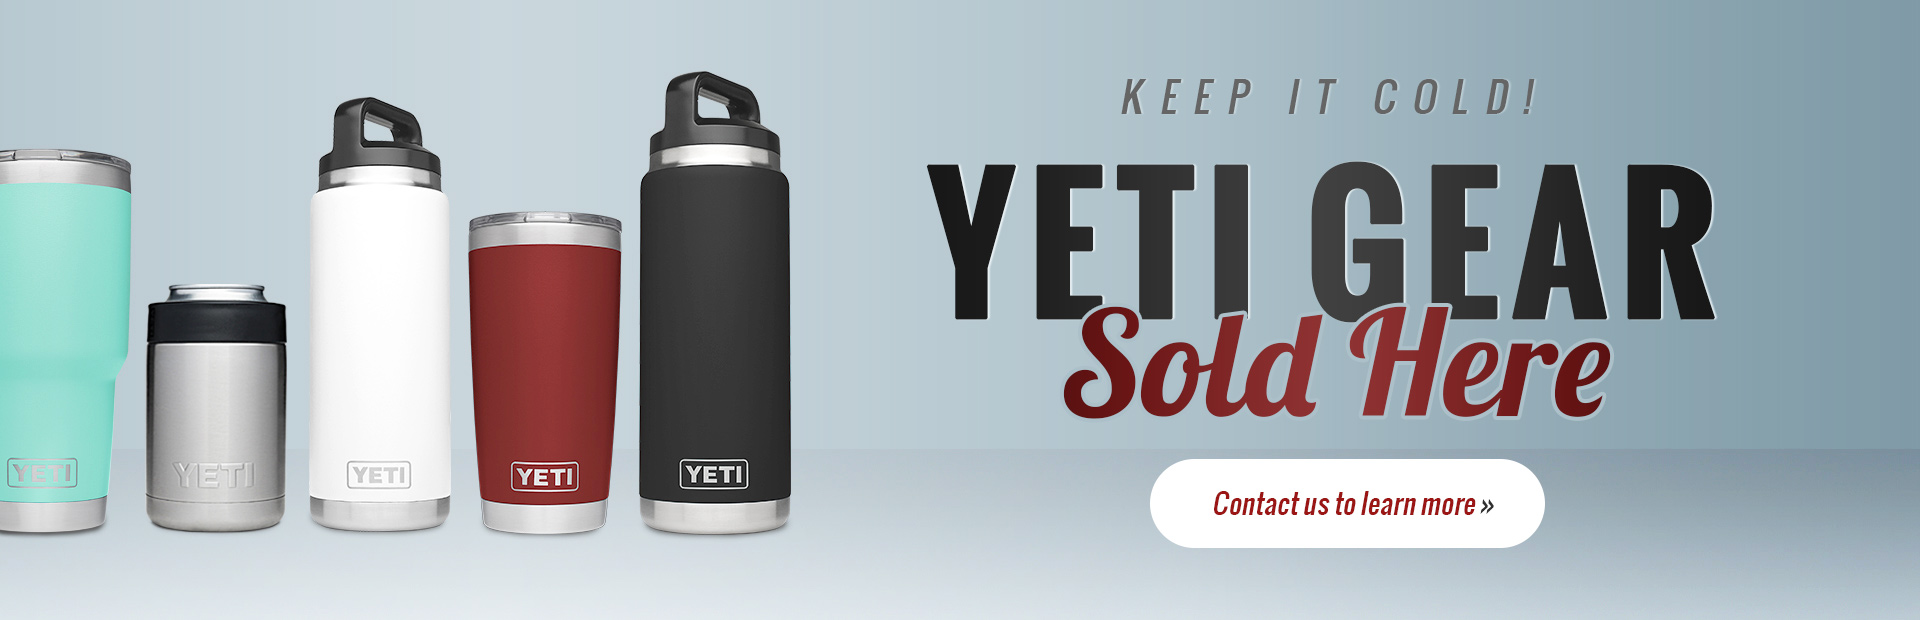 We sell YETI gear! Contact us for details.